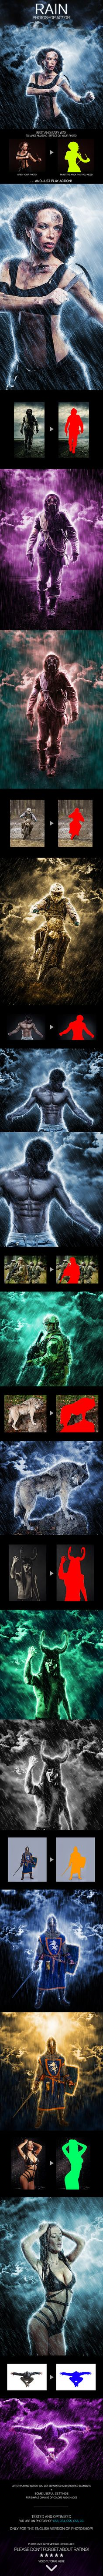 Rain Photoshop Action #photoeffect Download: http://graphicriver.net/item/rain-photoshop-action/11758895?ref=ksioks